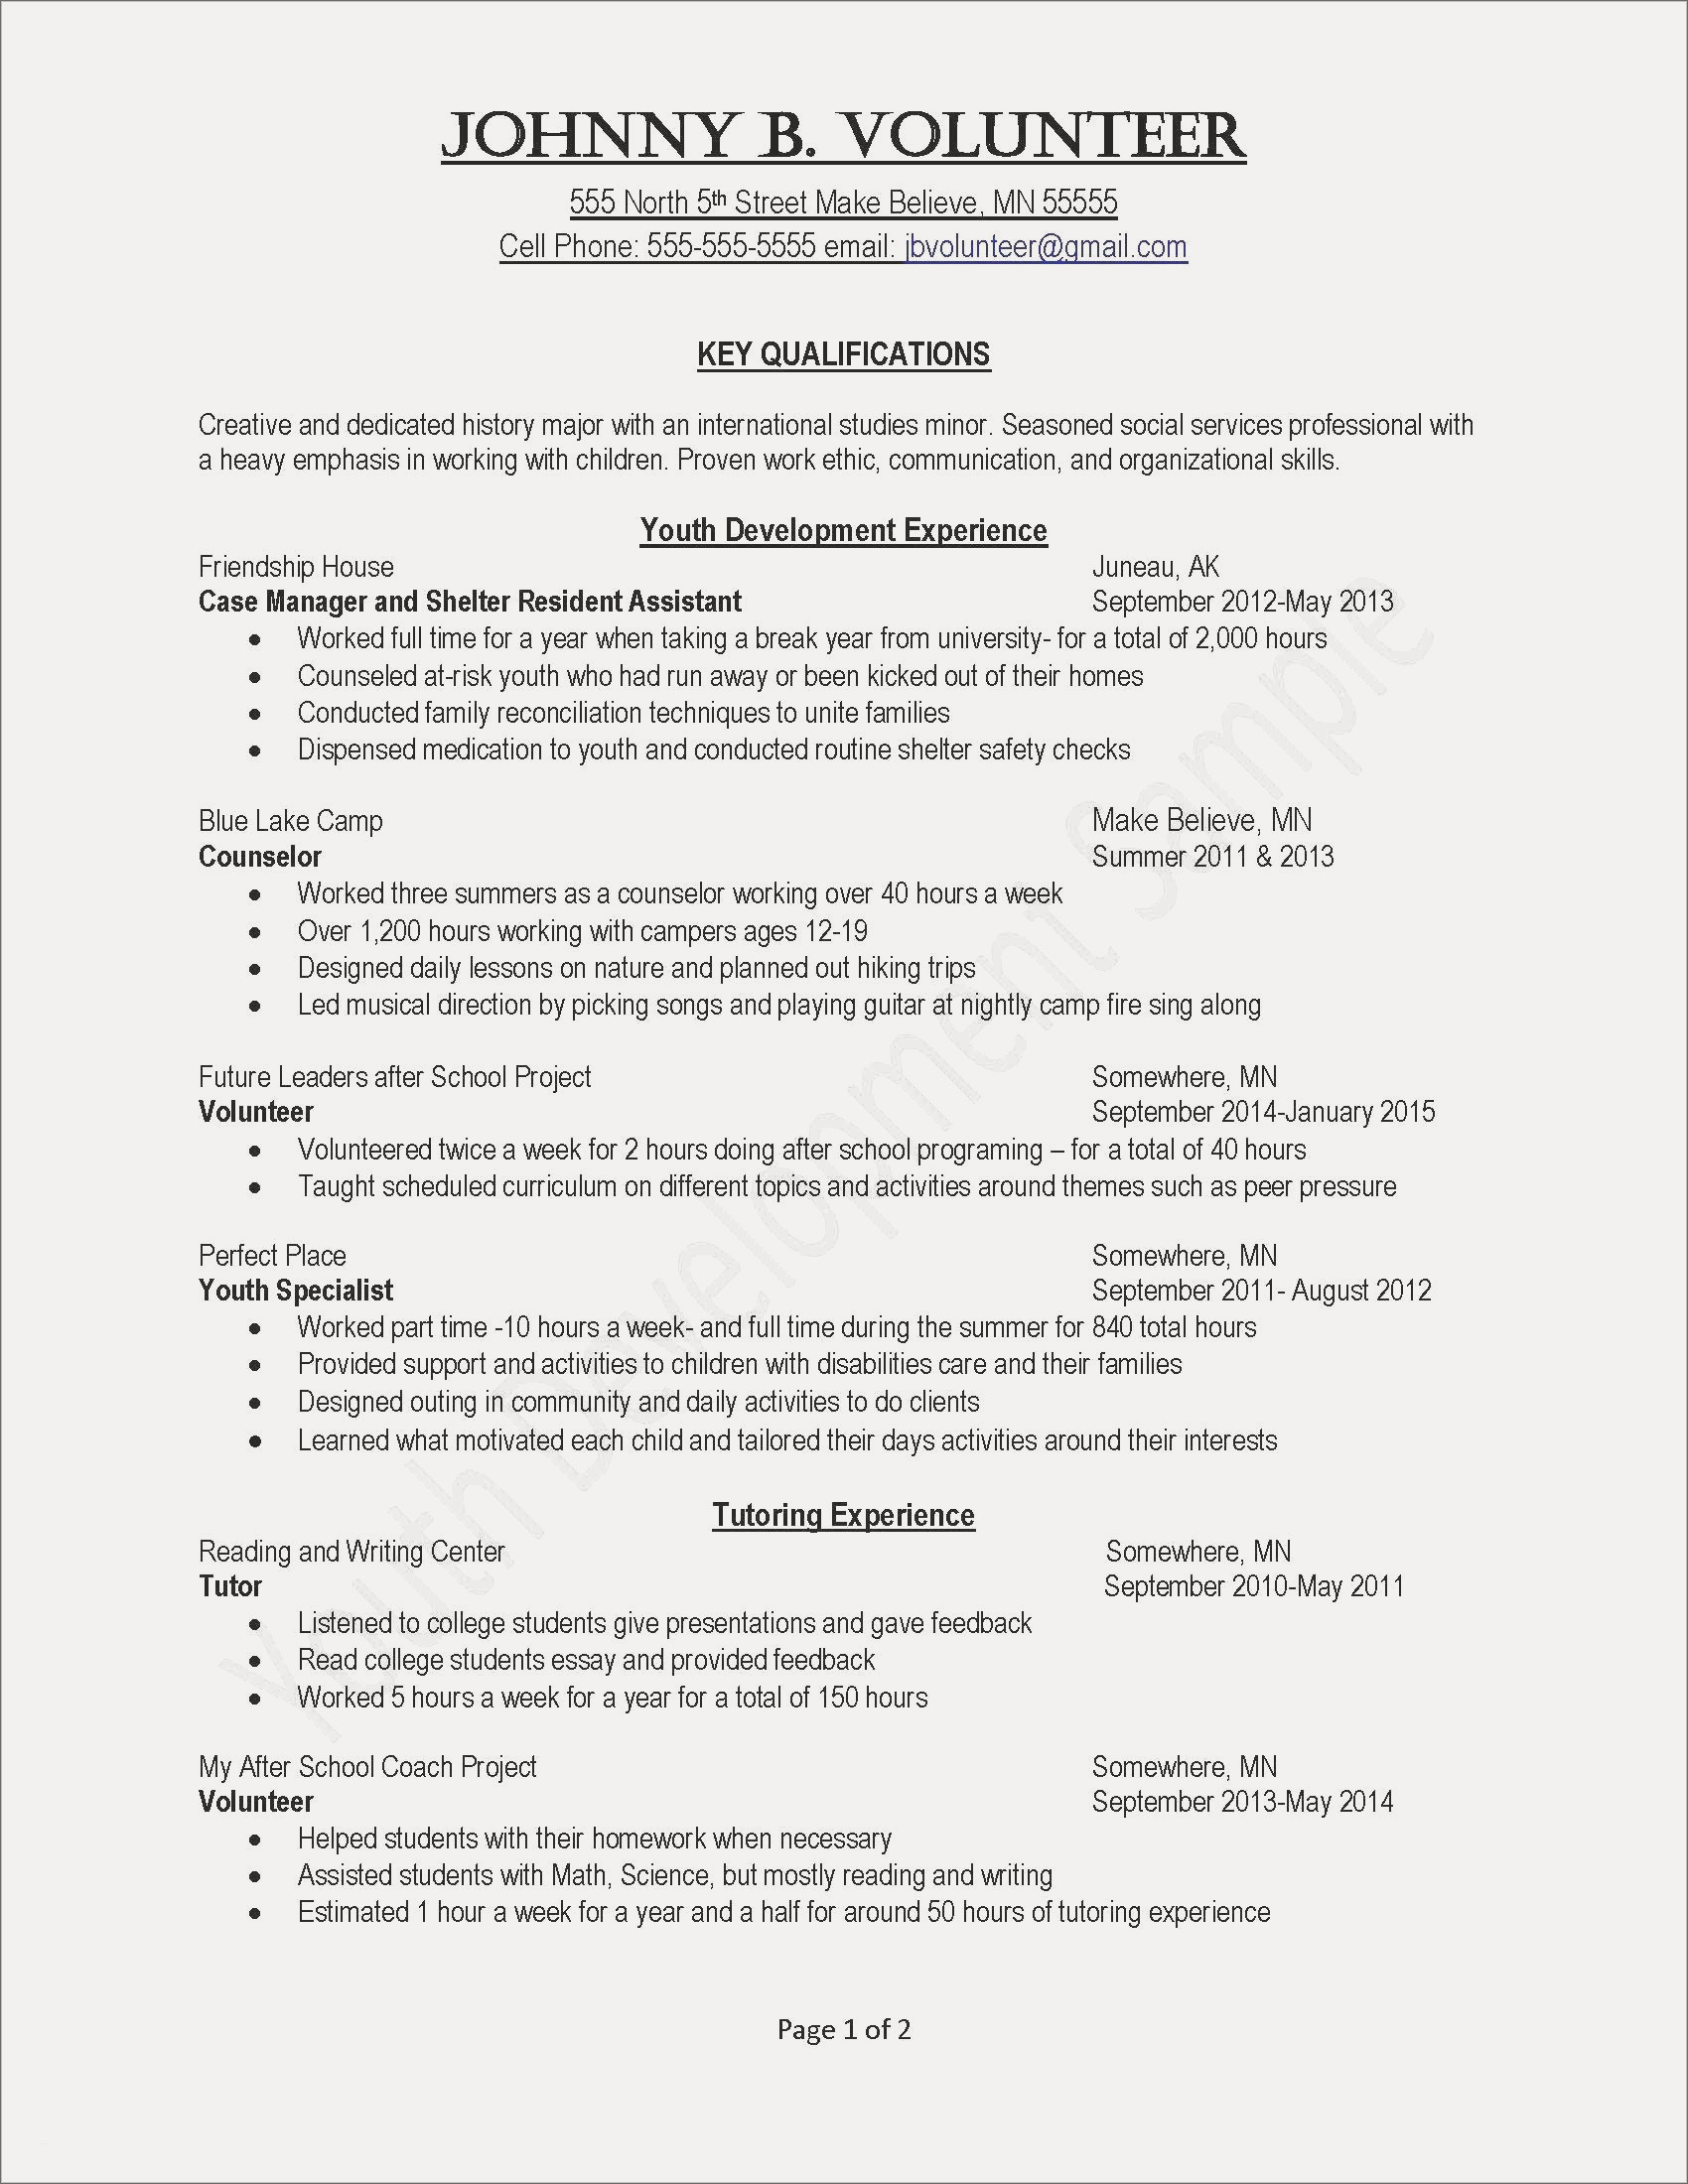 Resume Template Volunteer Work - Resume Template Copy and Save Activities Resume Template Valid Job